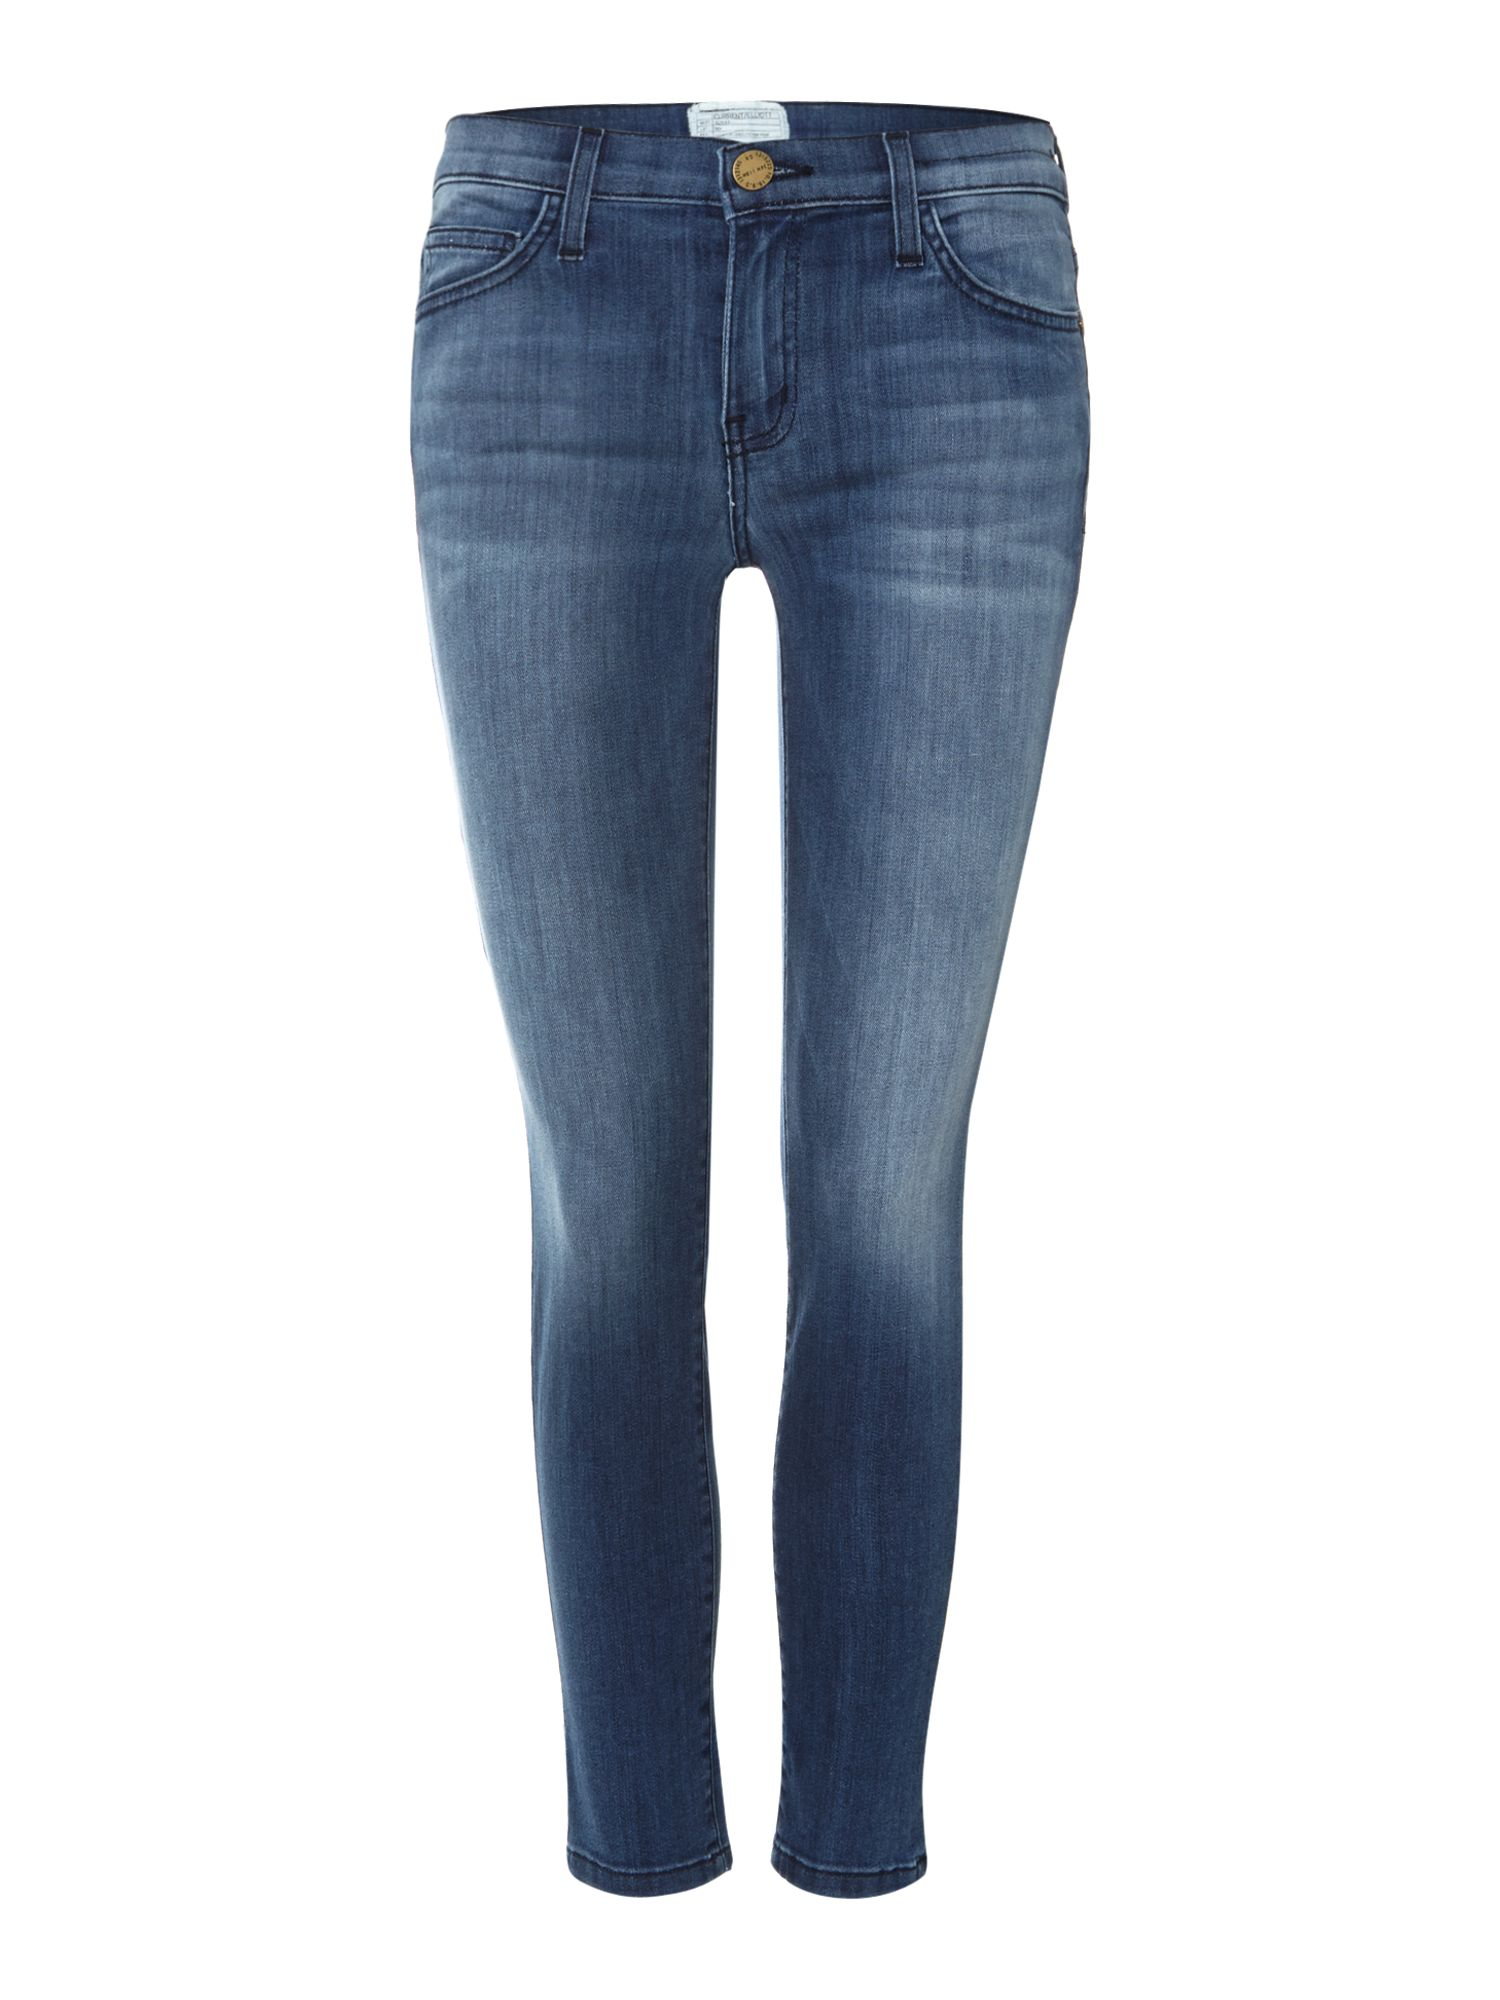 The Stiletto skinny jeans in Sunfade